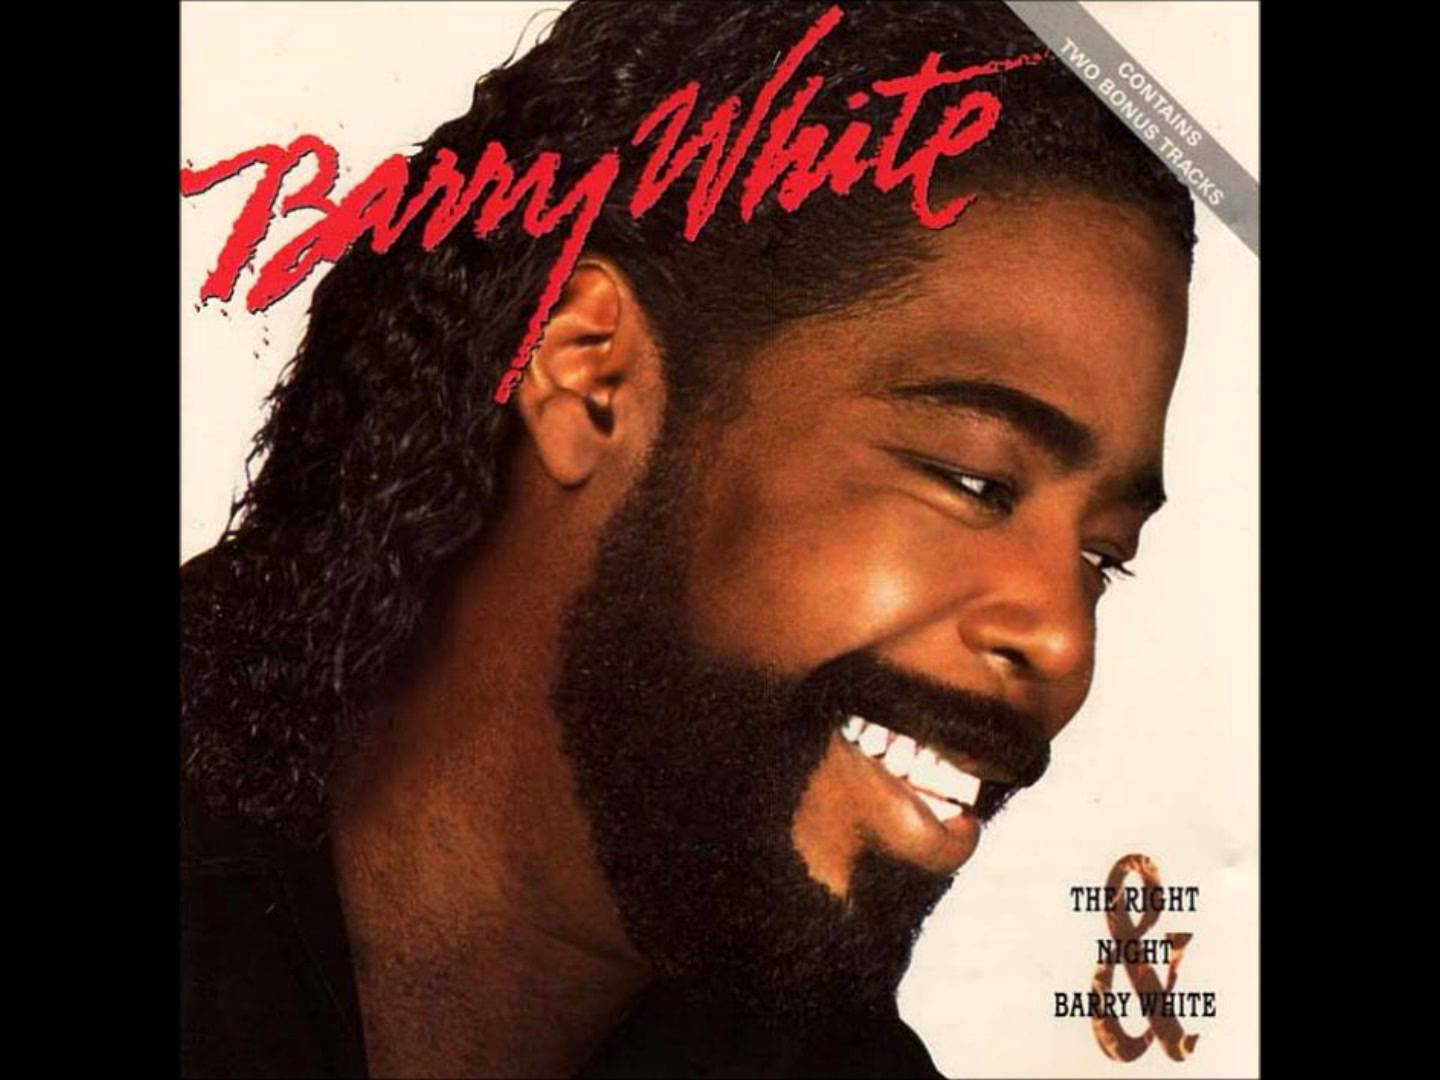 Barry White – Sho' You Right